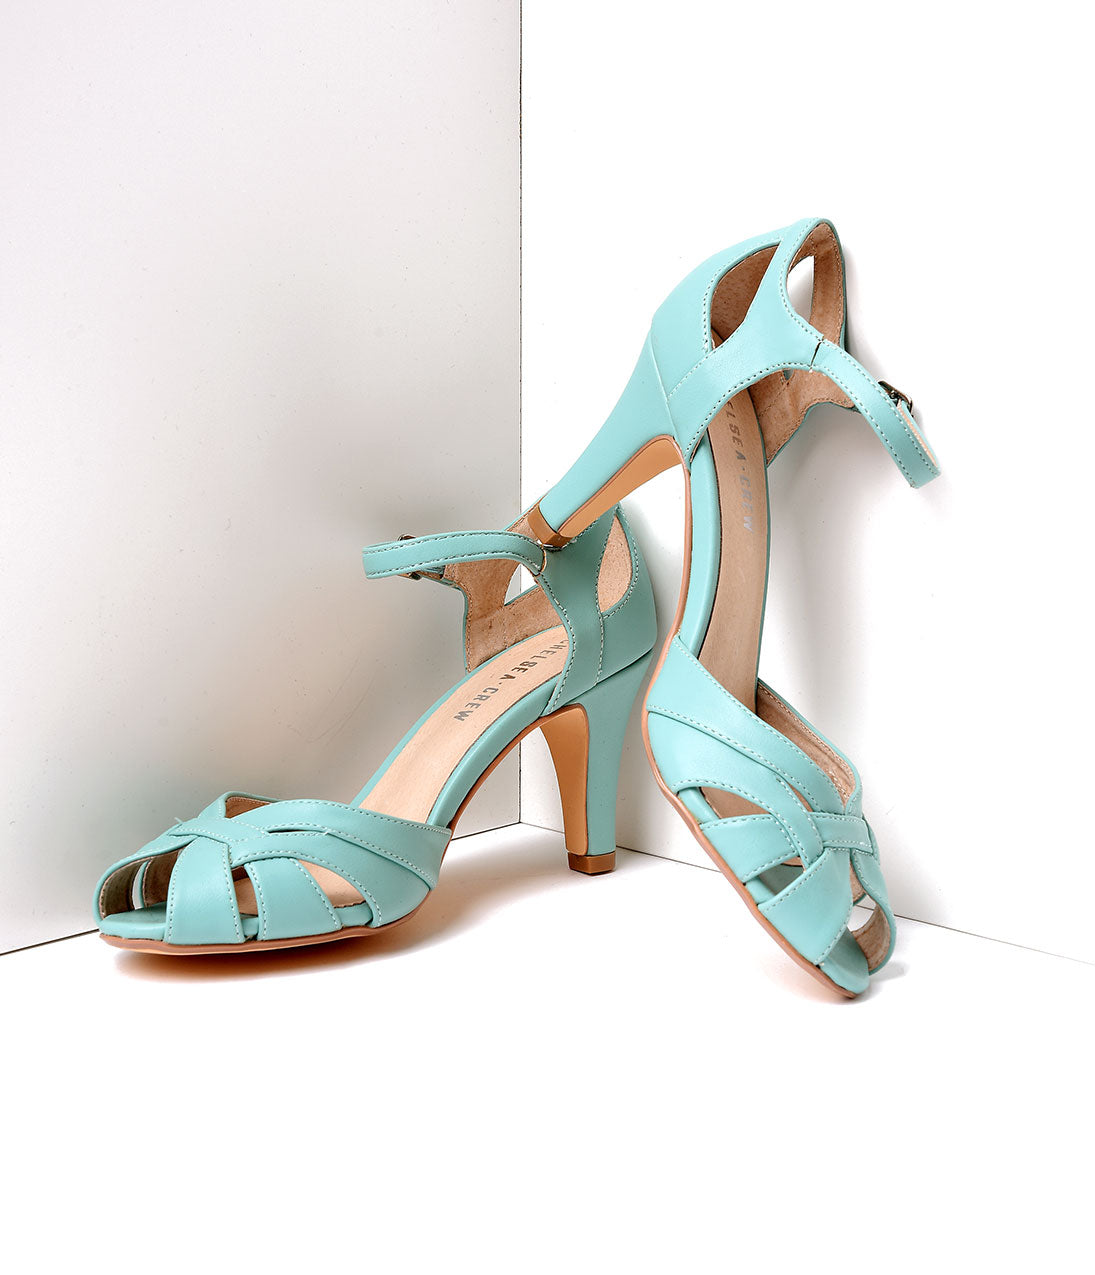 Pin Up Shoes- Heels & Flats Mint Leatherette Peep Toe DOrsay Pump Shoes $48.00 AT vintagedancer.com